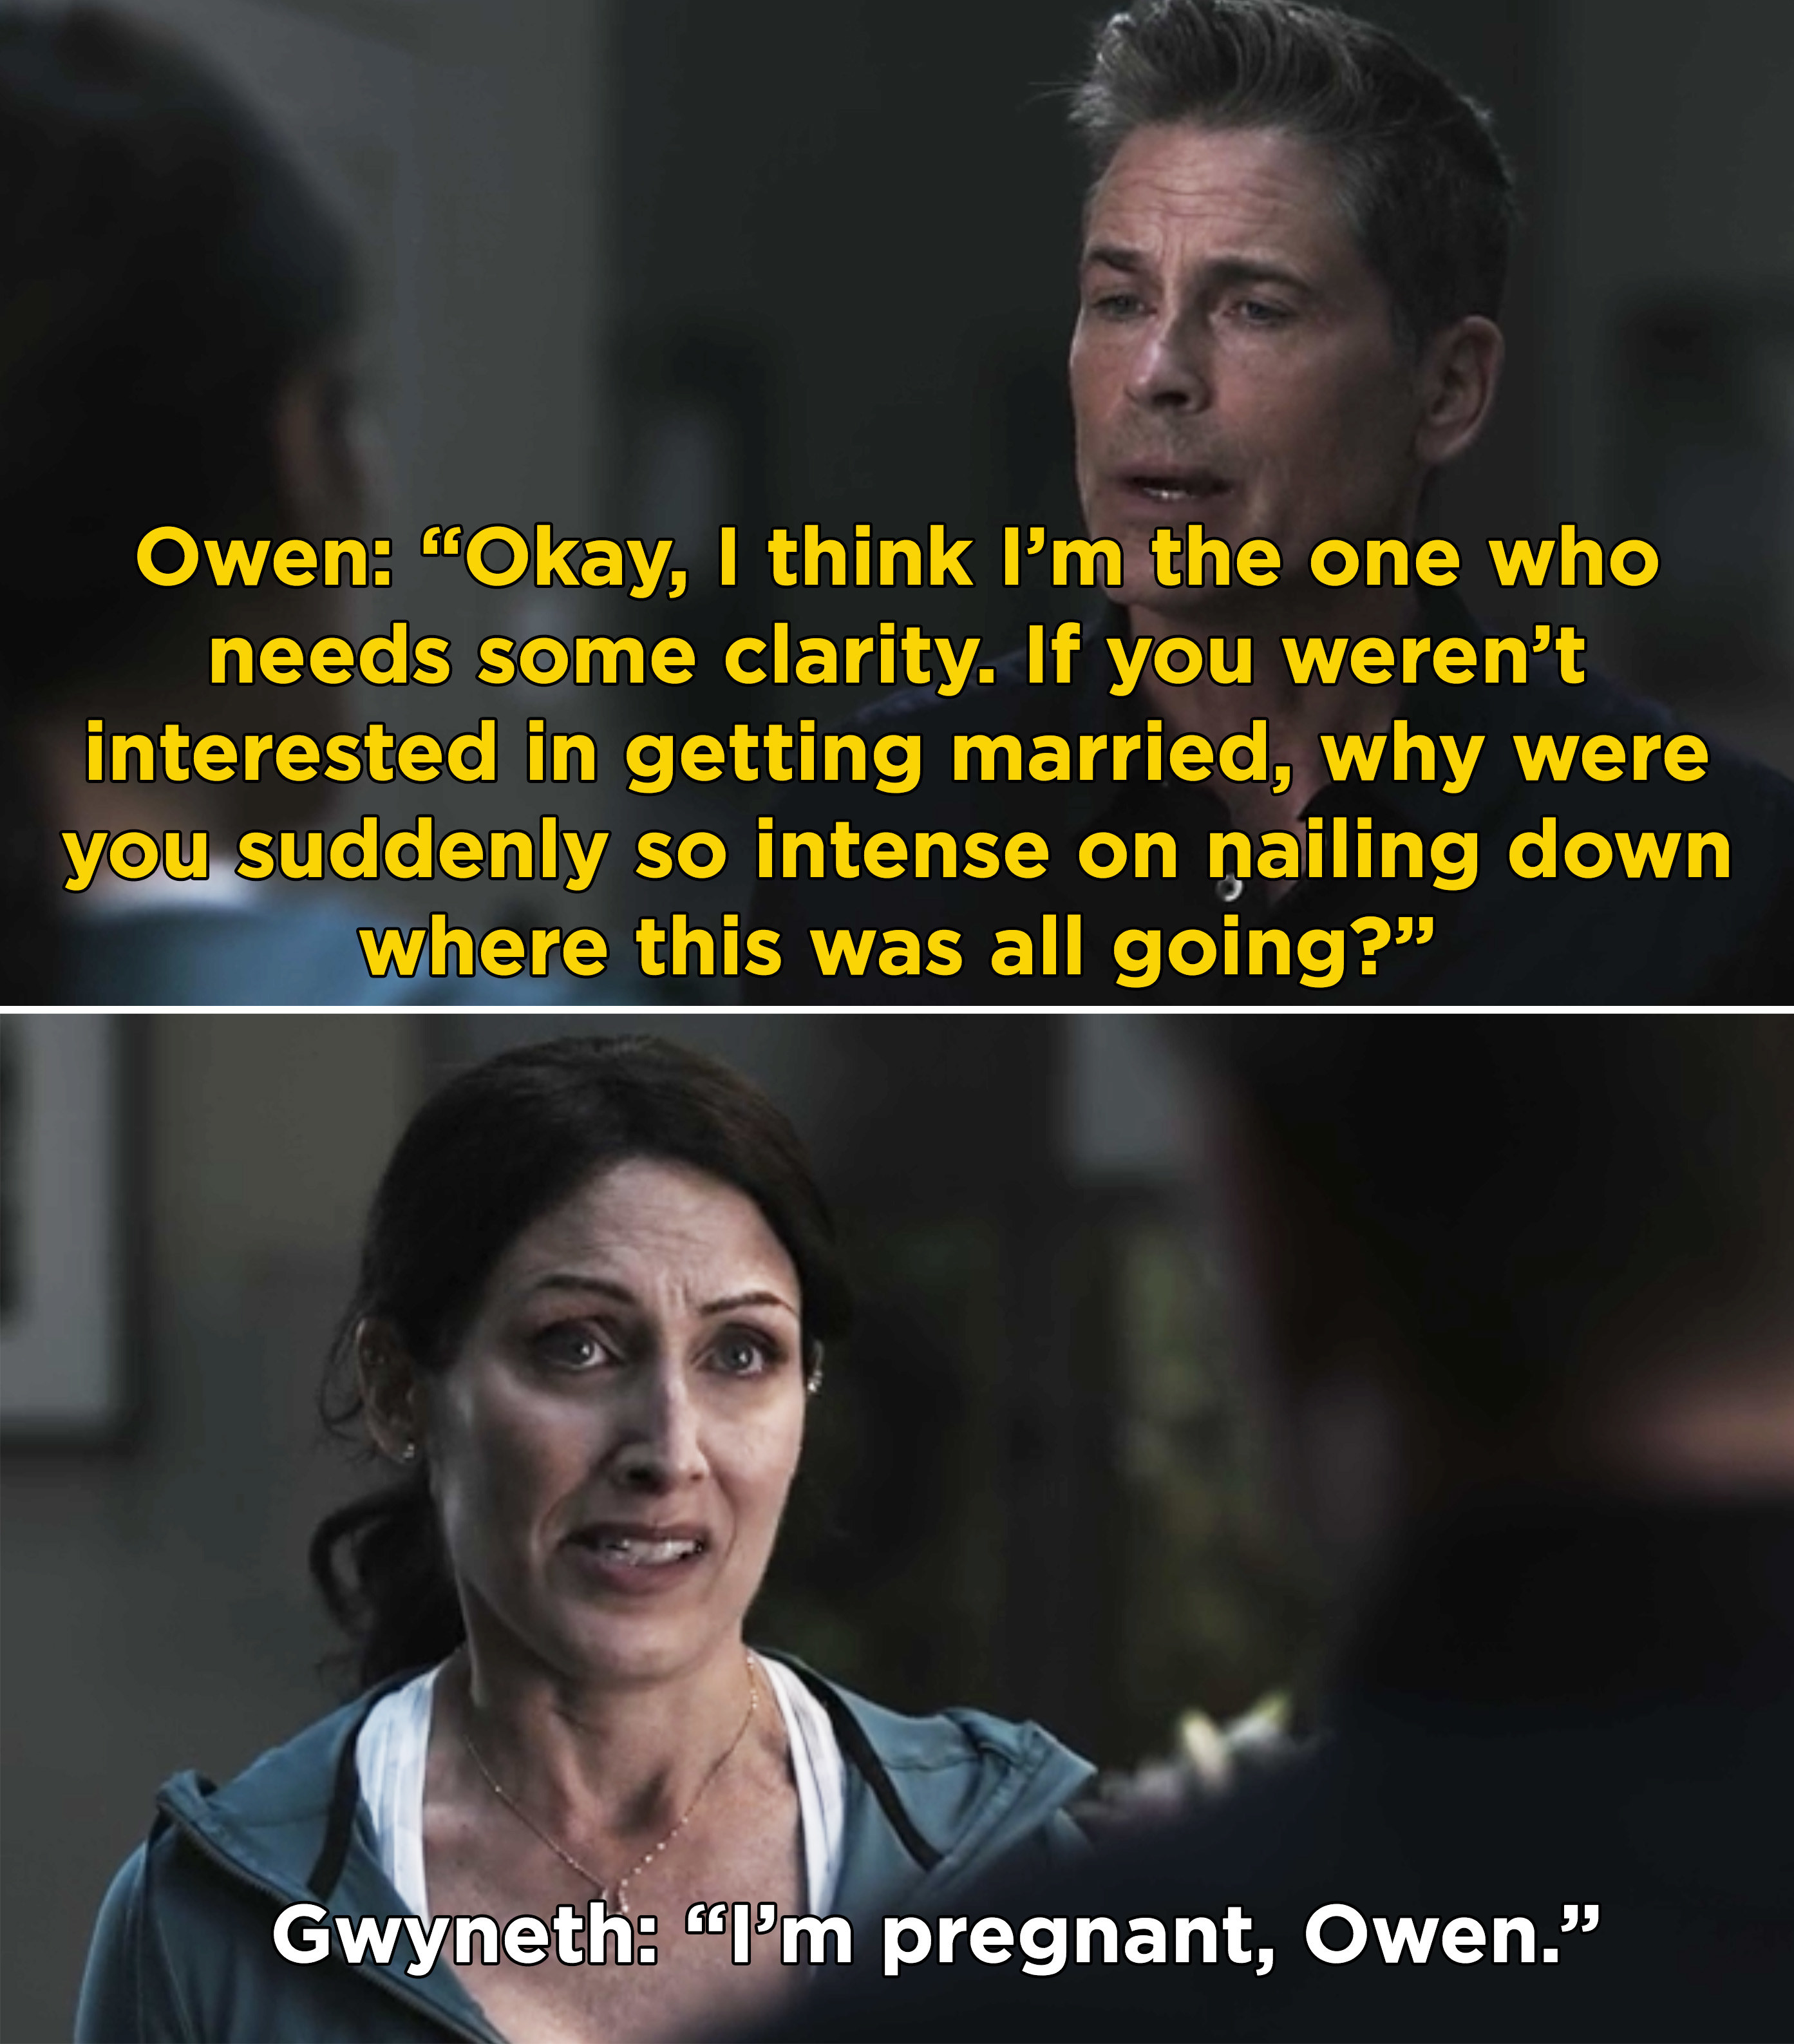 """Owen asking Gwyneth why they talked about """"nailing down"""" their relationship if she wasn't interested in marriage, and Gwyneth saying she's pregnant"""